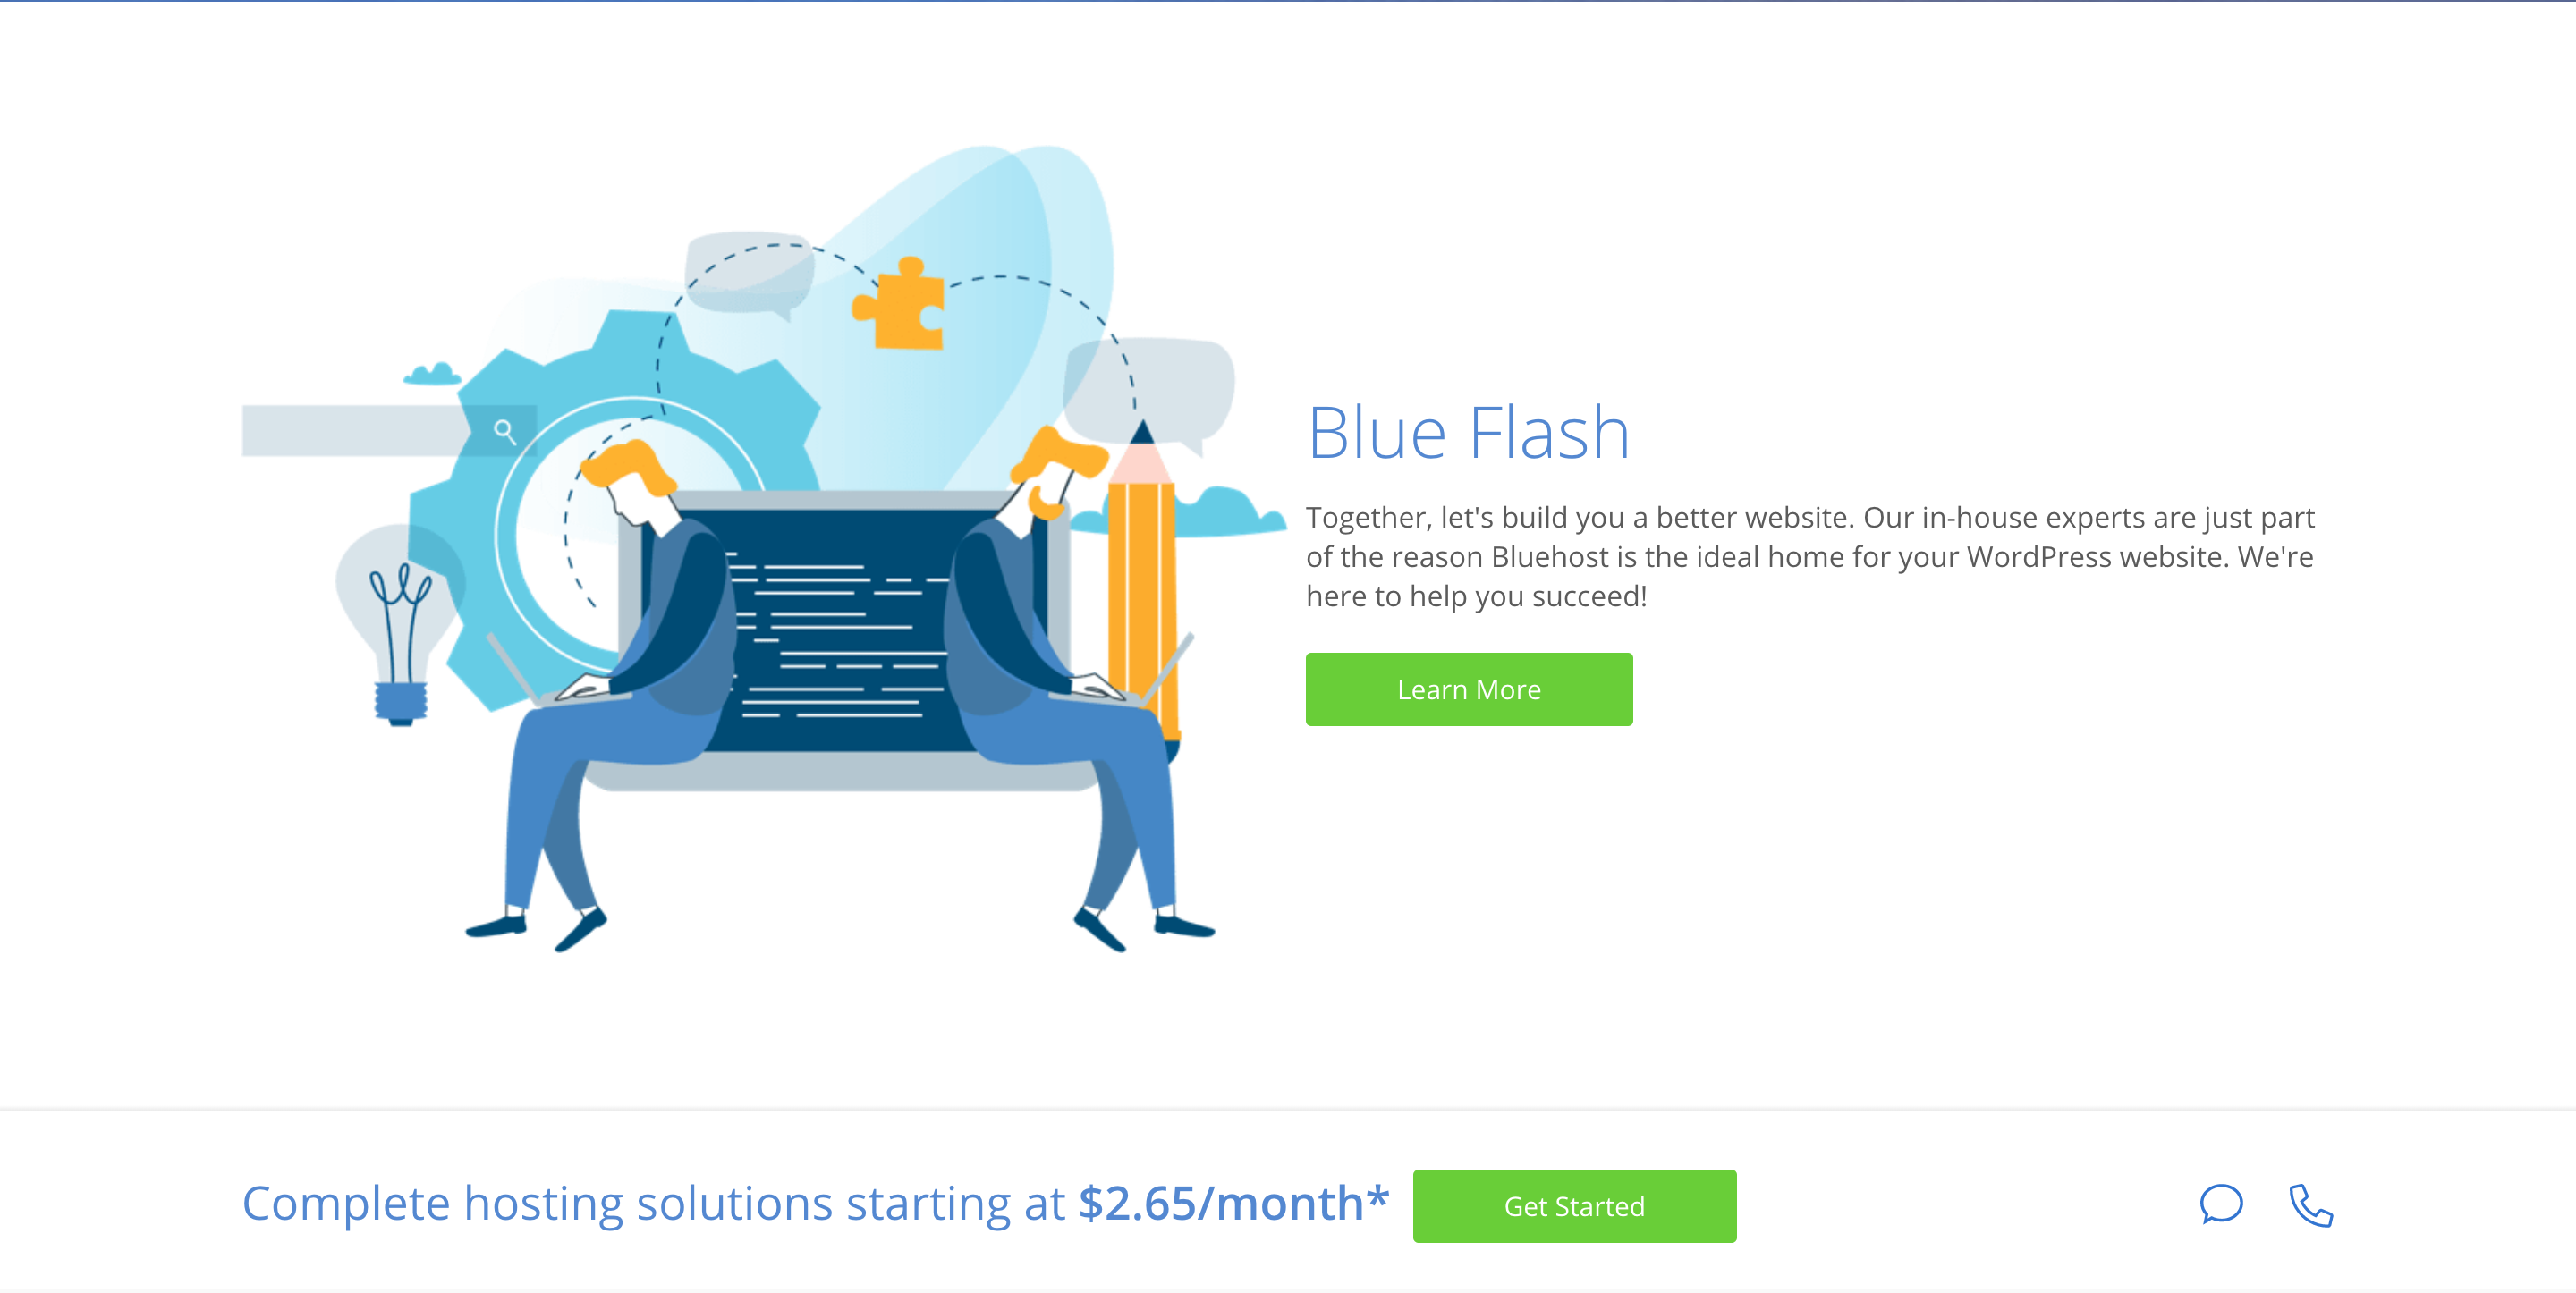 bluehost-coupon-featured-image